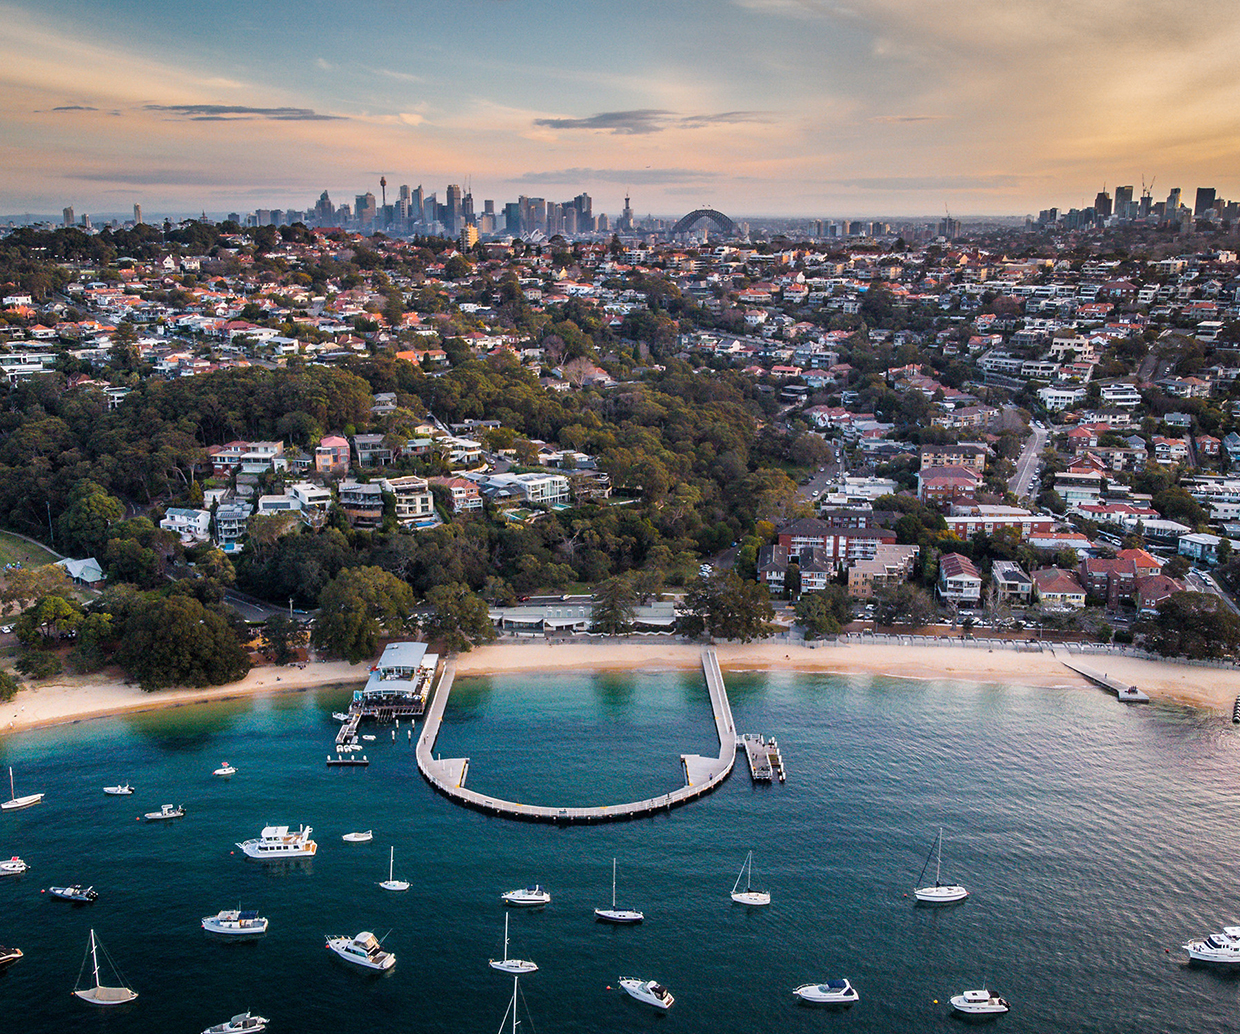 aerial view of sydney and beach